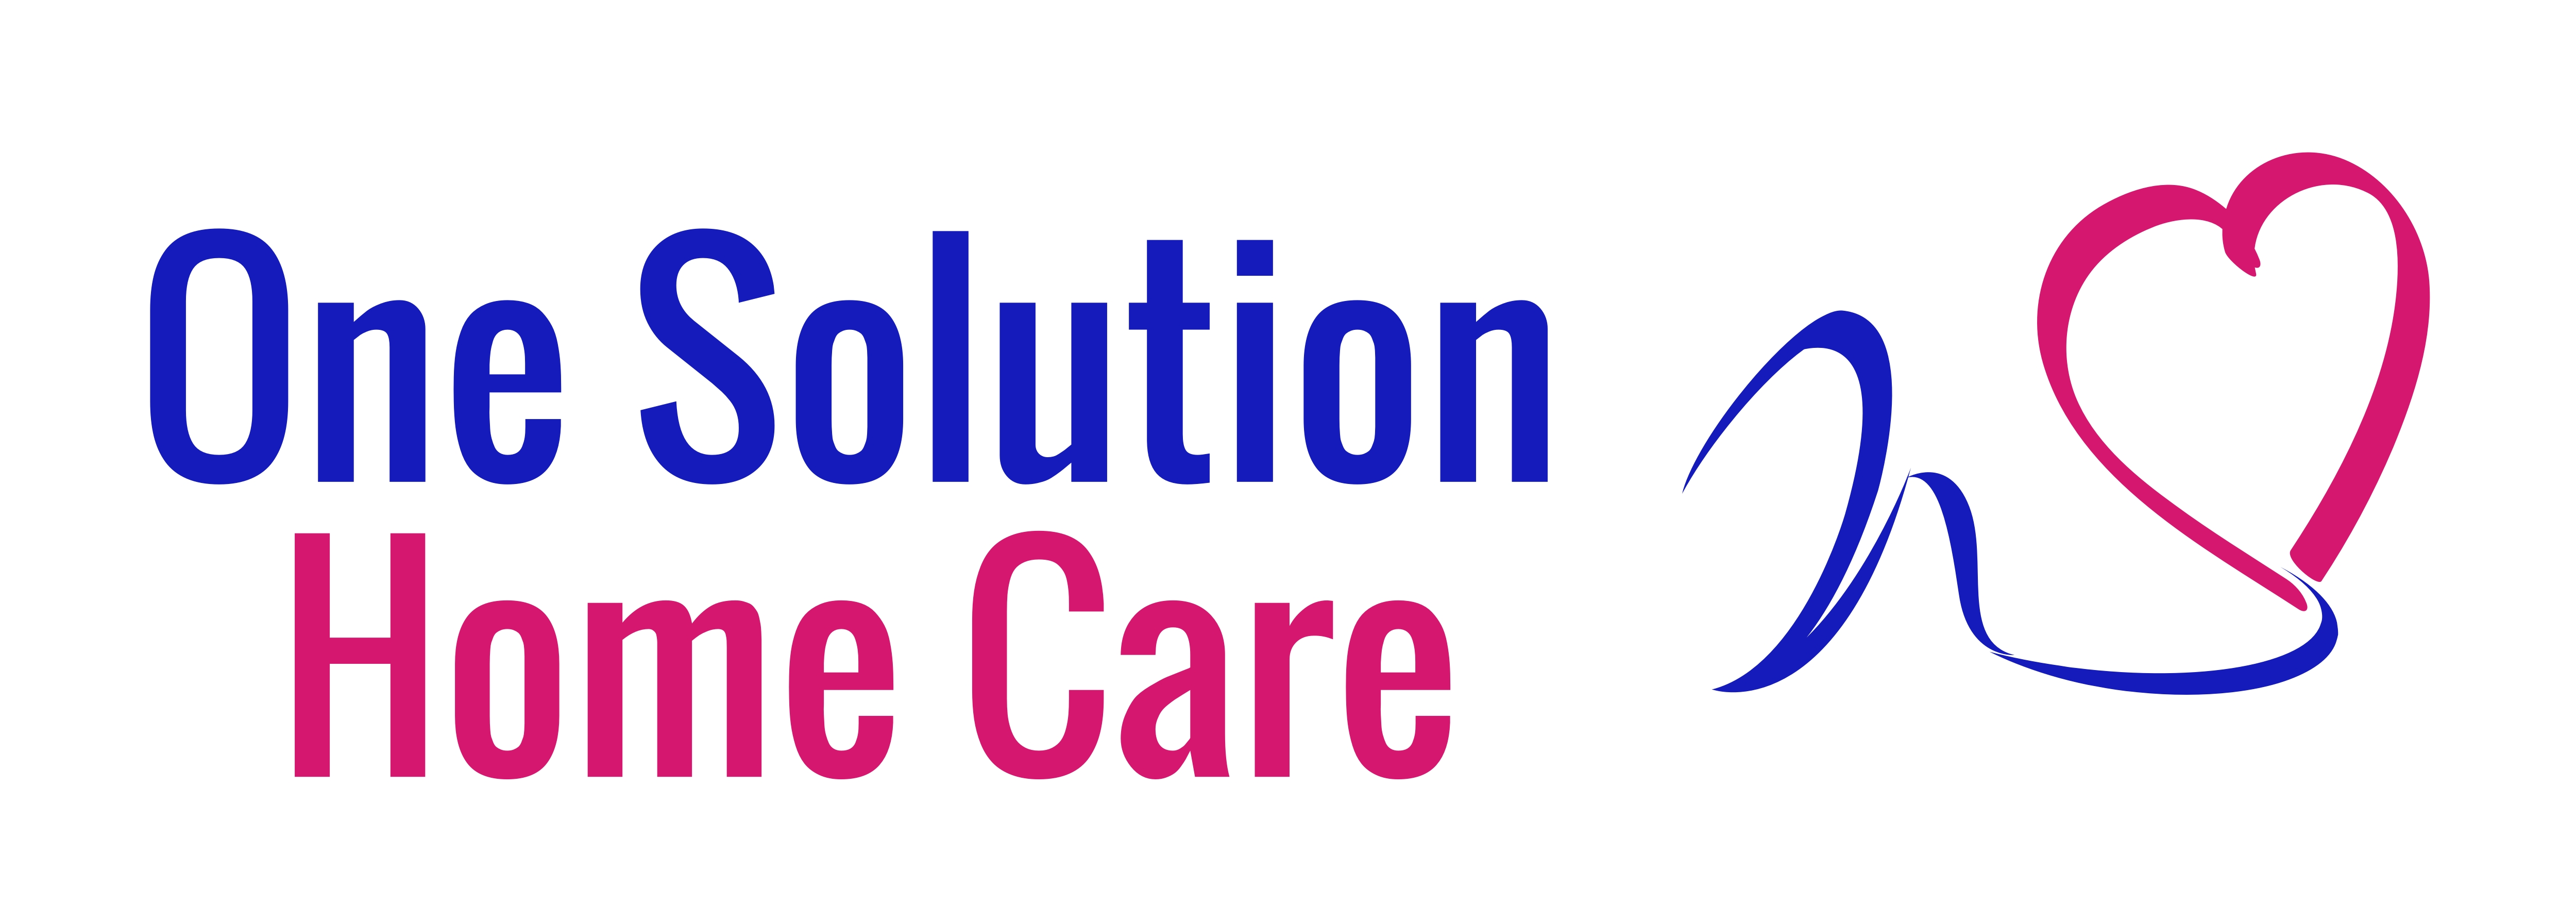 One Solution Home Care LLC